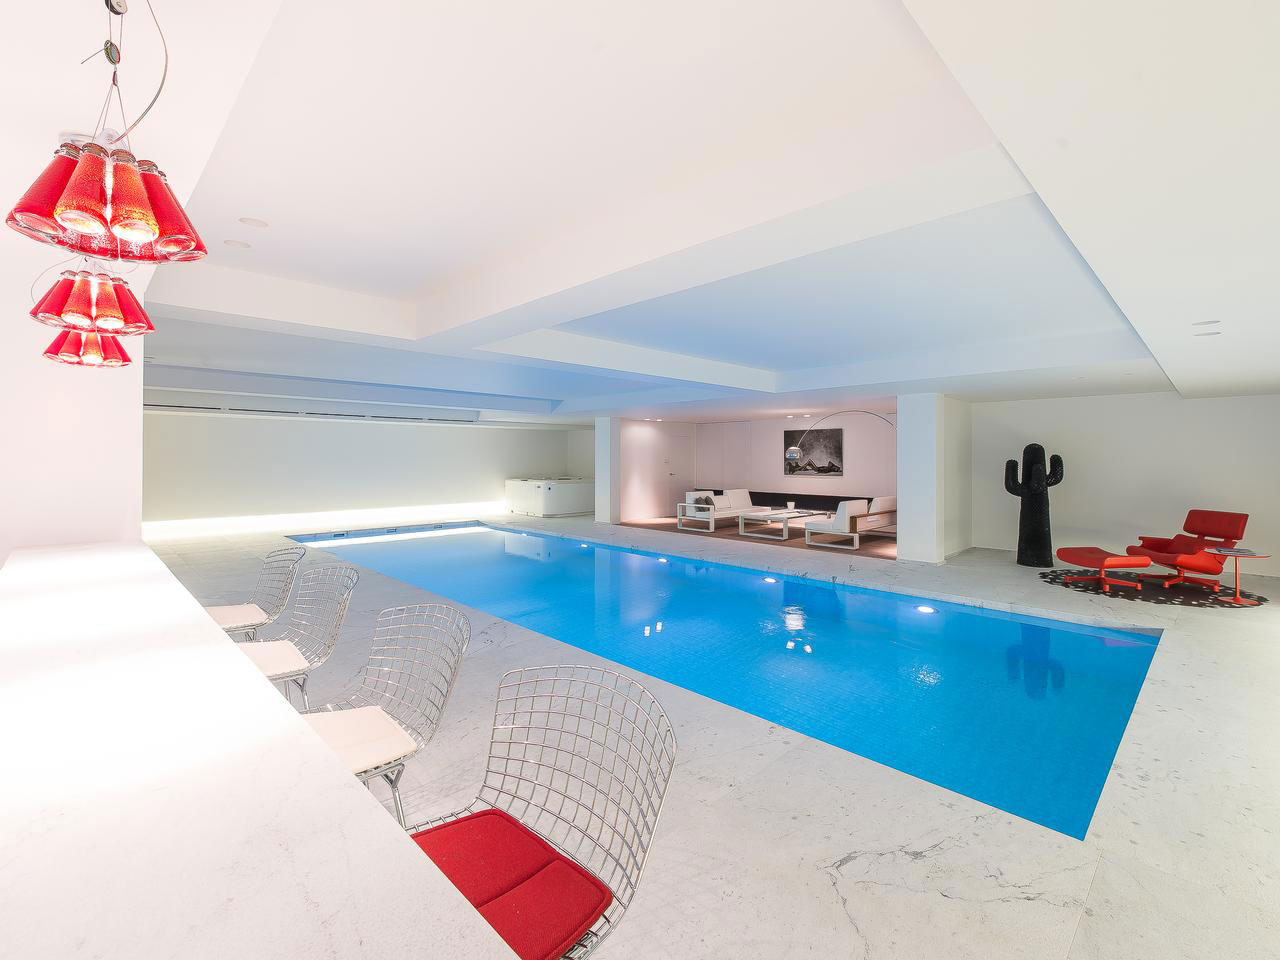 Indoor Swimming Pool, Bar, Lighting, House Renovation in Sint-Genesius-Rode, Belgium